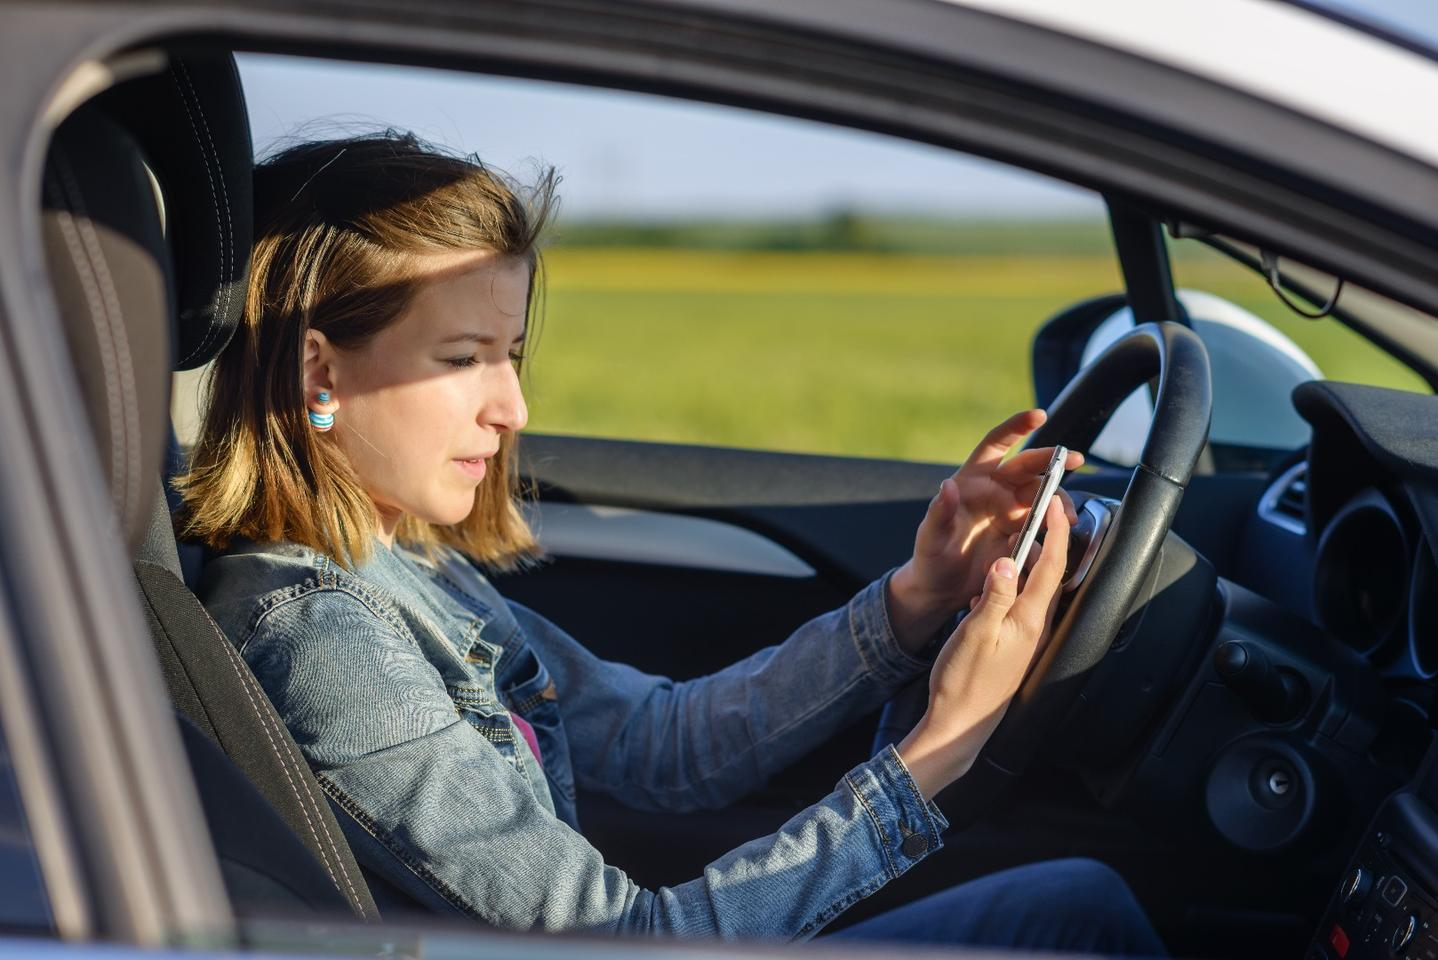 Why is texting more dangerous than other distractions?